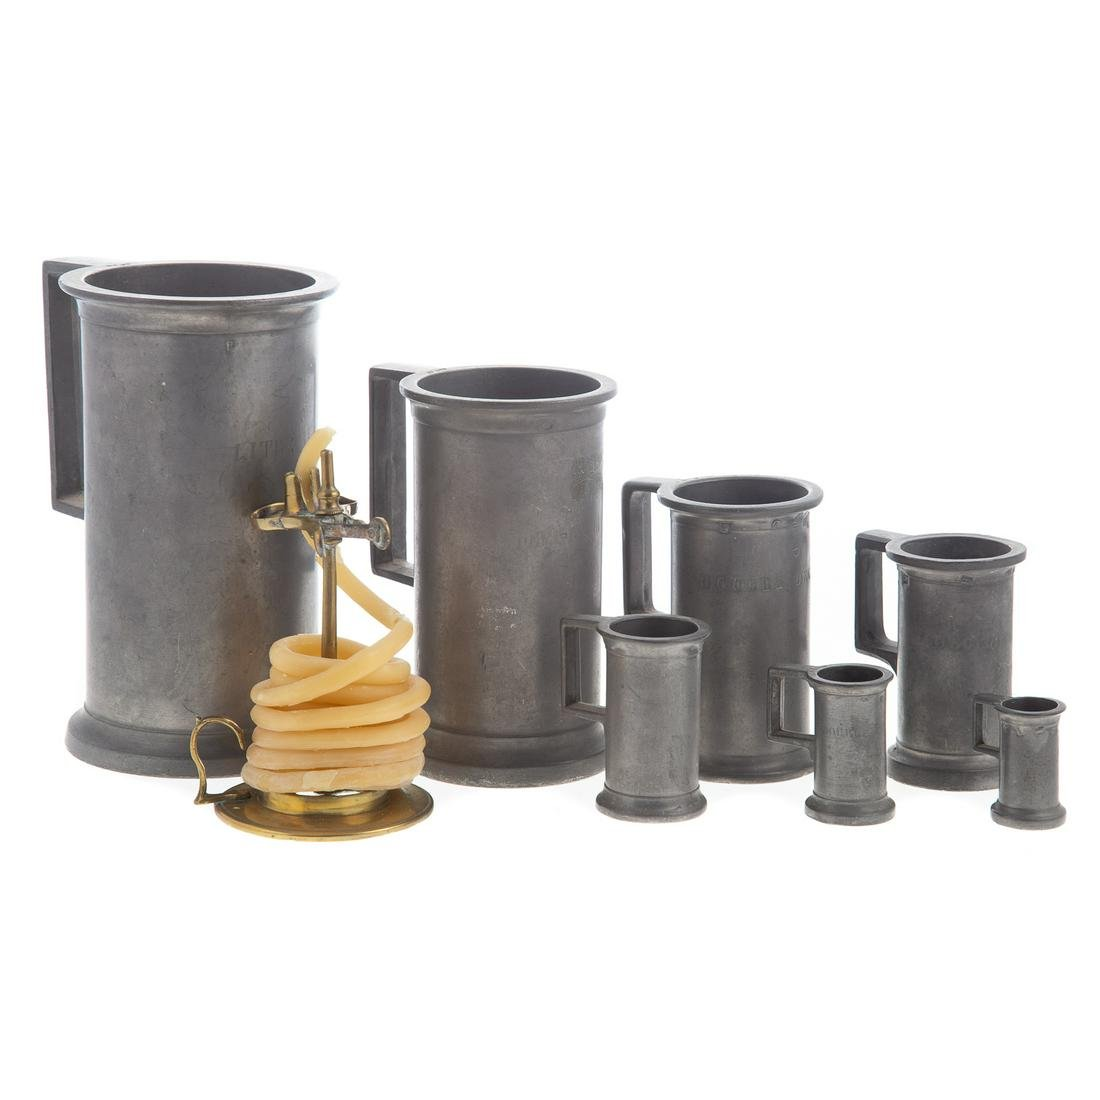 Brass Wax Jack & Seven Graduated Pewter Measures